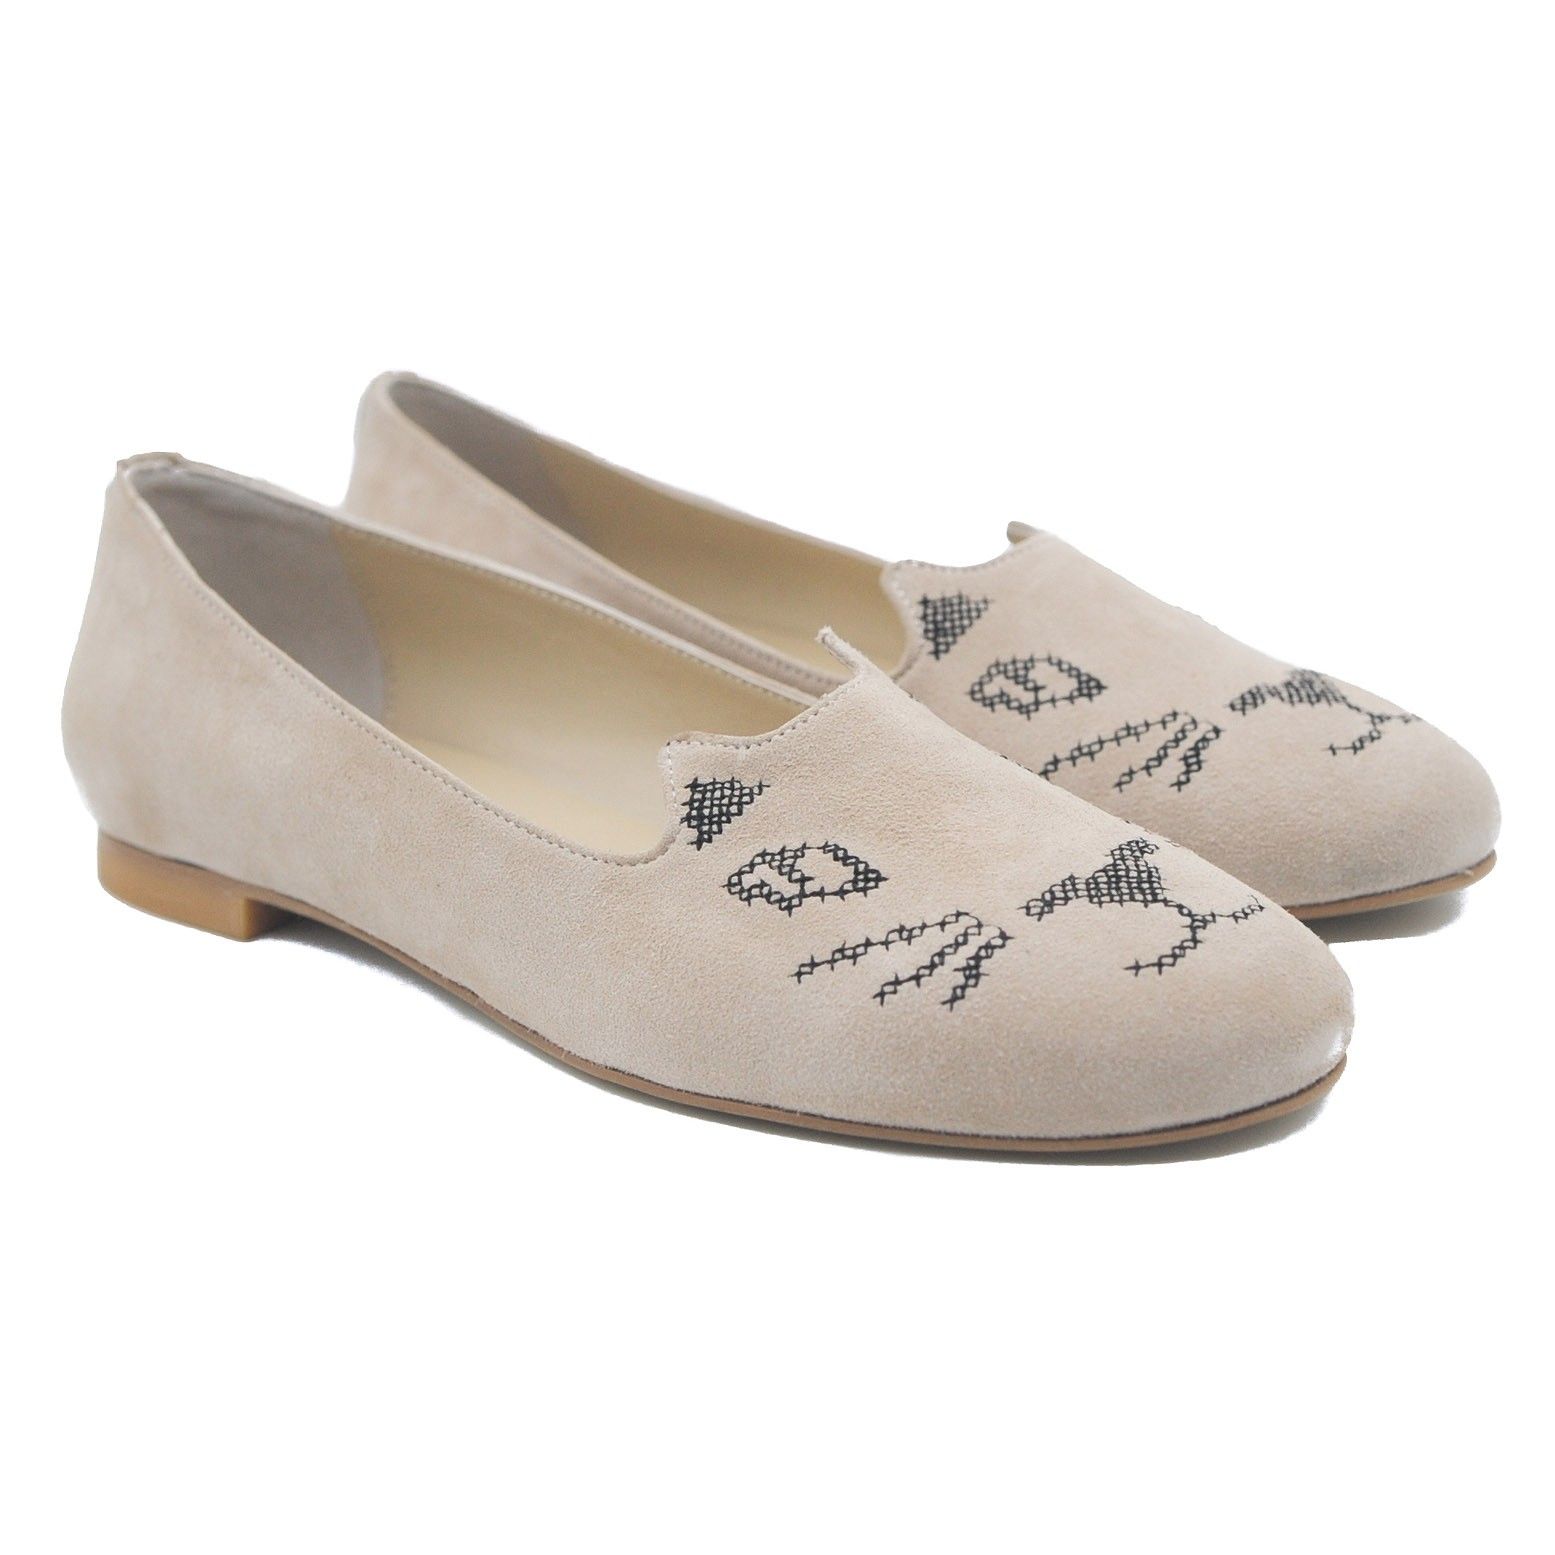 Pegia Ladies' Flat Suede Slipper Pumps with a Cross Stitch Cat Face Beige